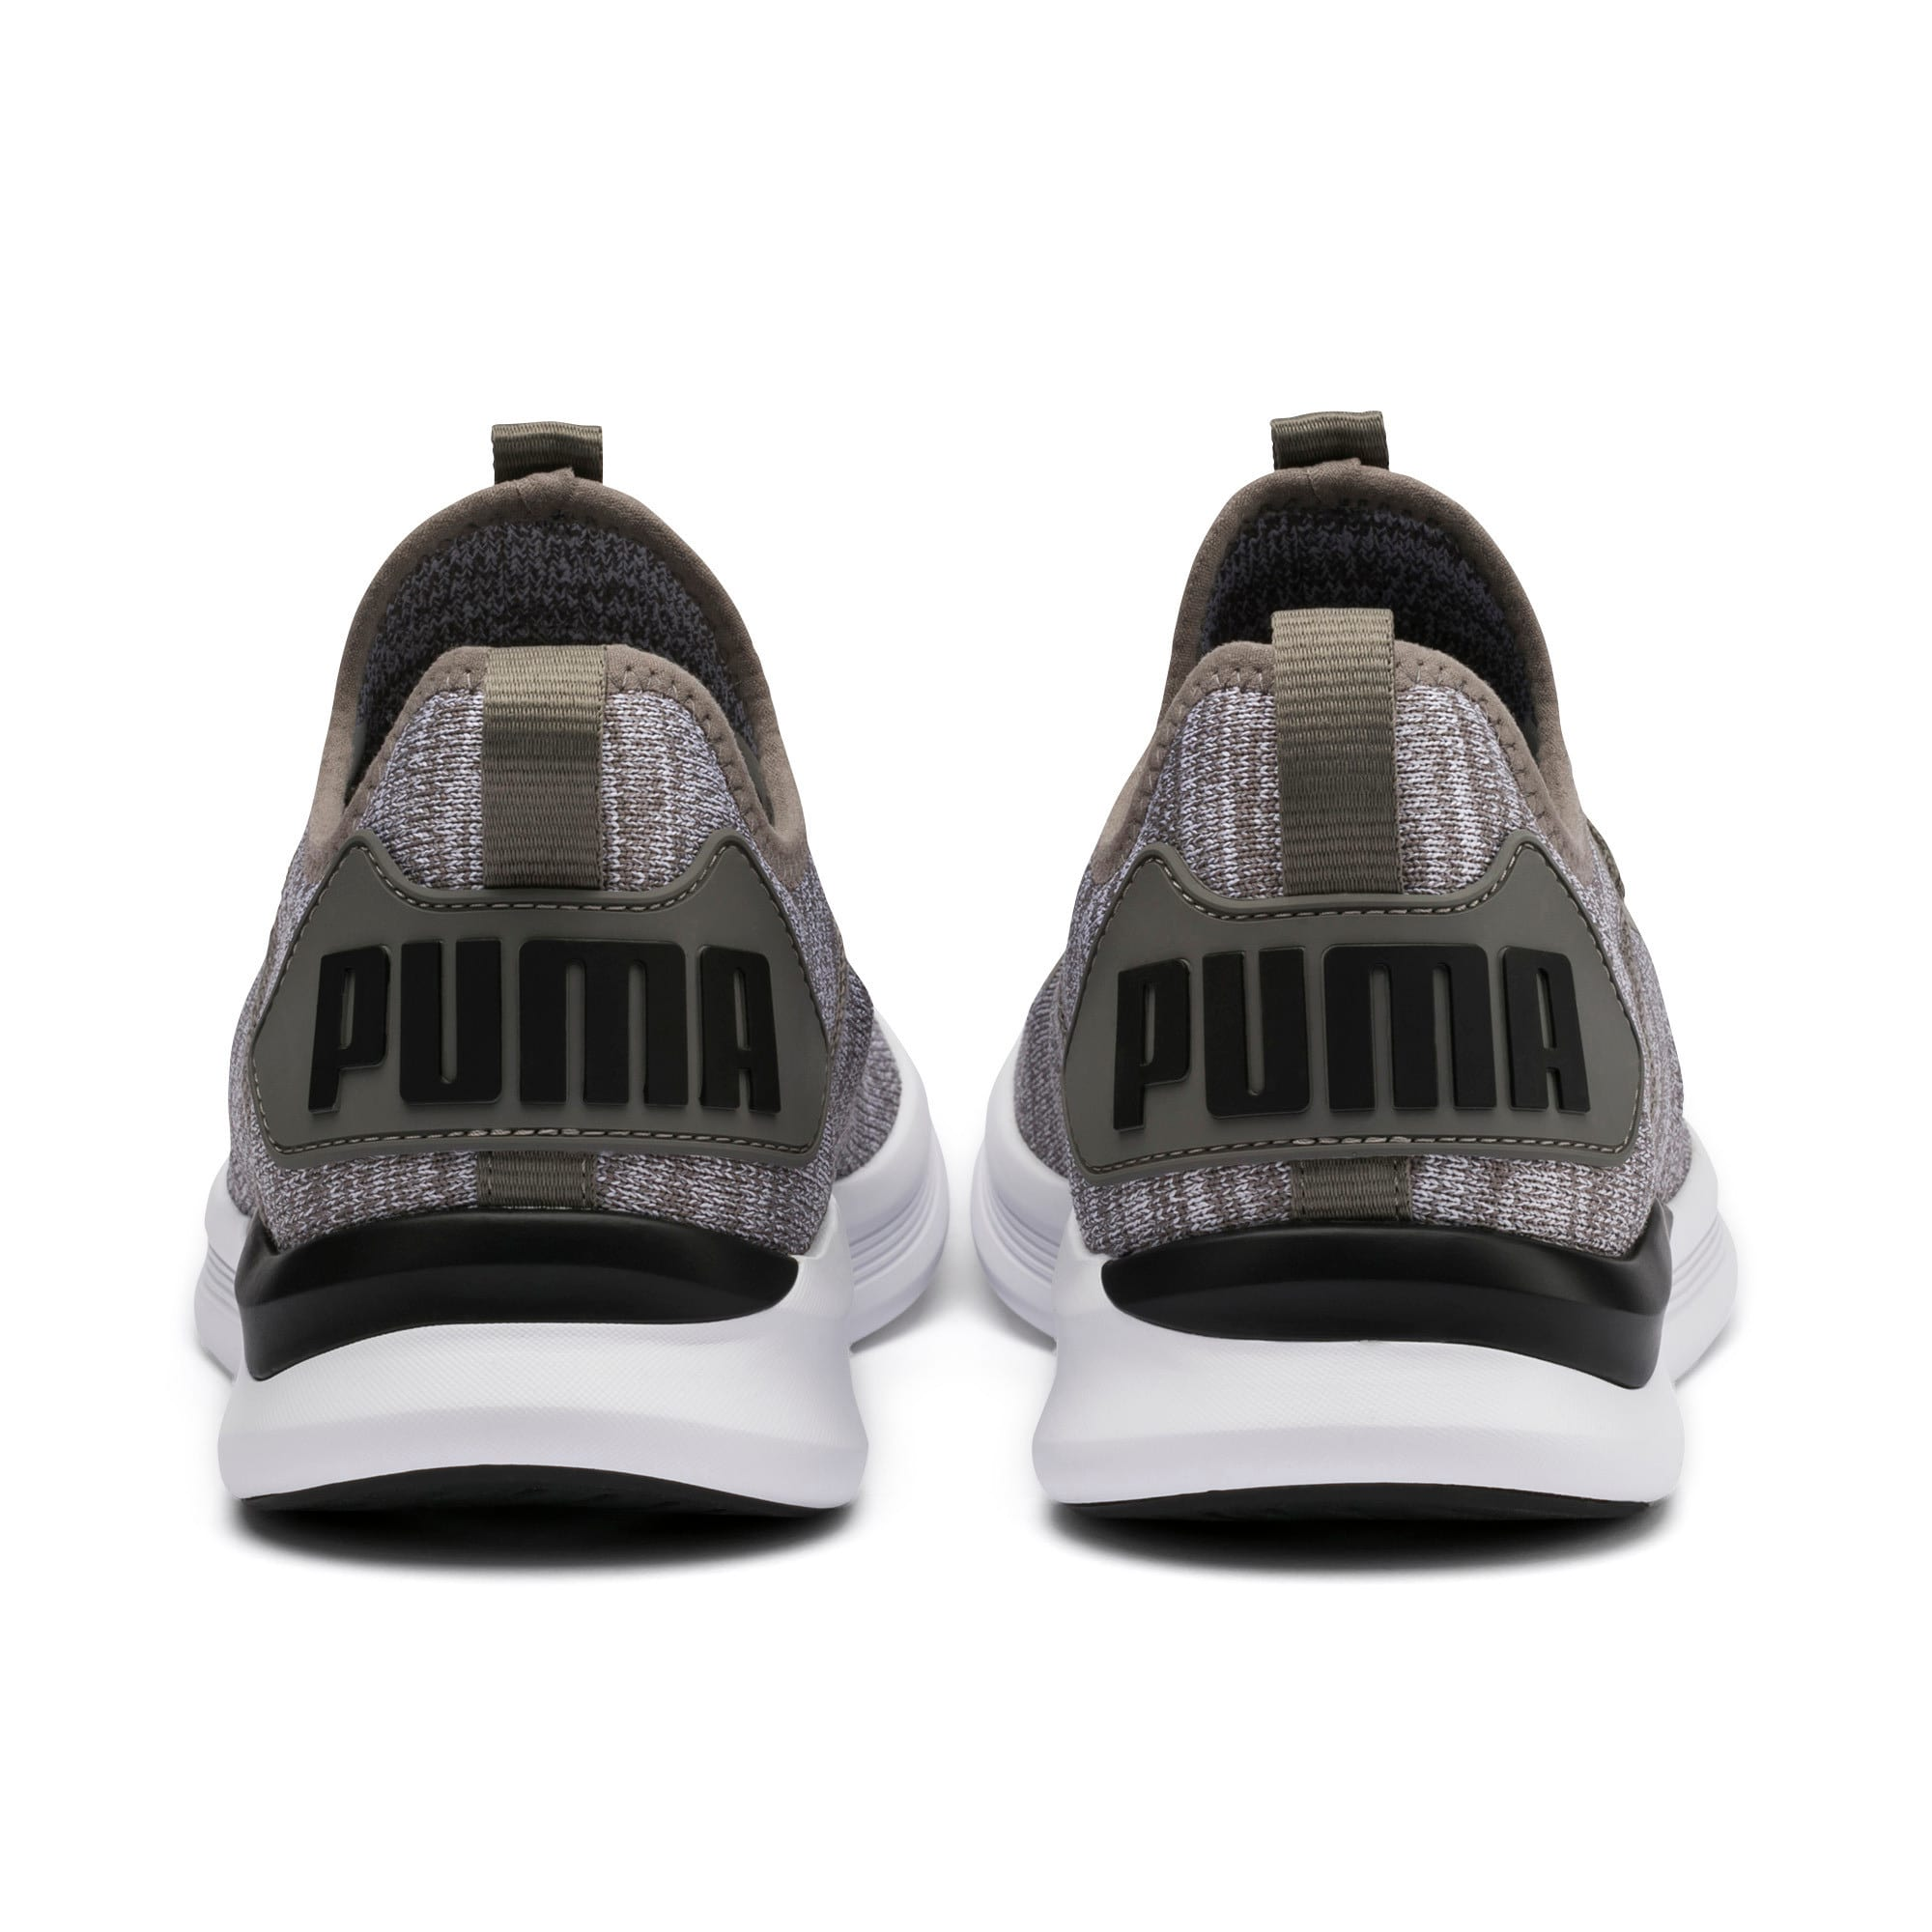 Thumbnail 5 of IGNITE Flash evoKNIT Men's Training Shoes, Steel Gray-Puma Black, medium-IND